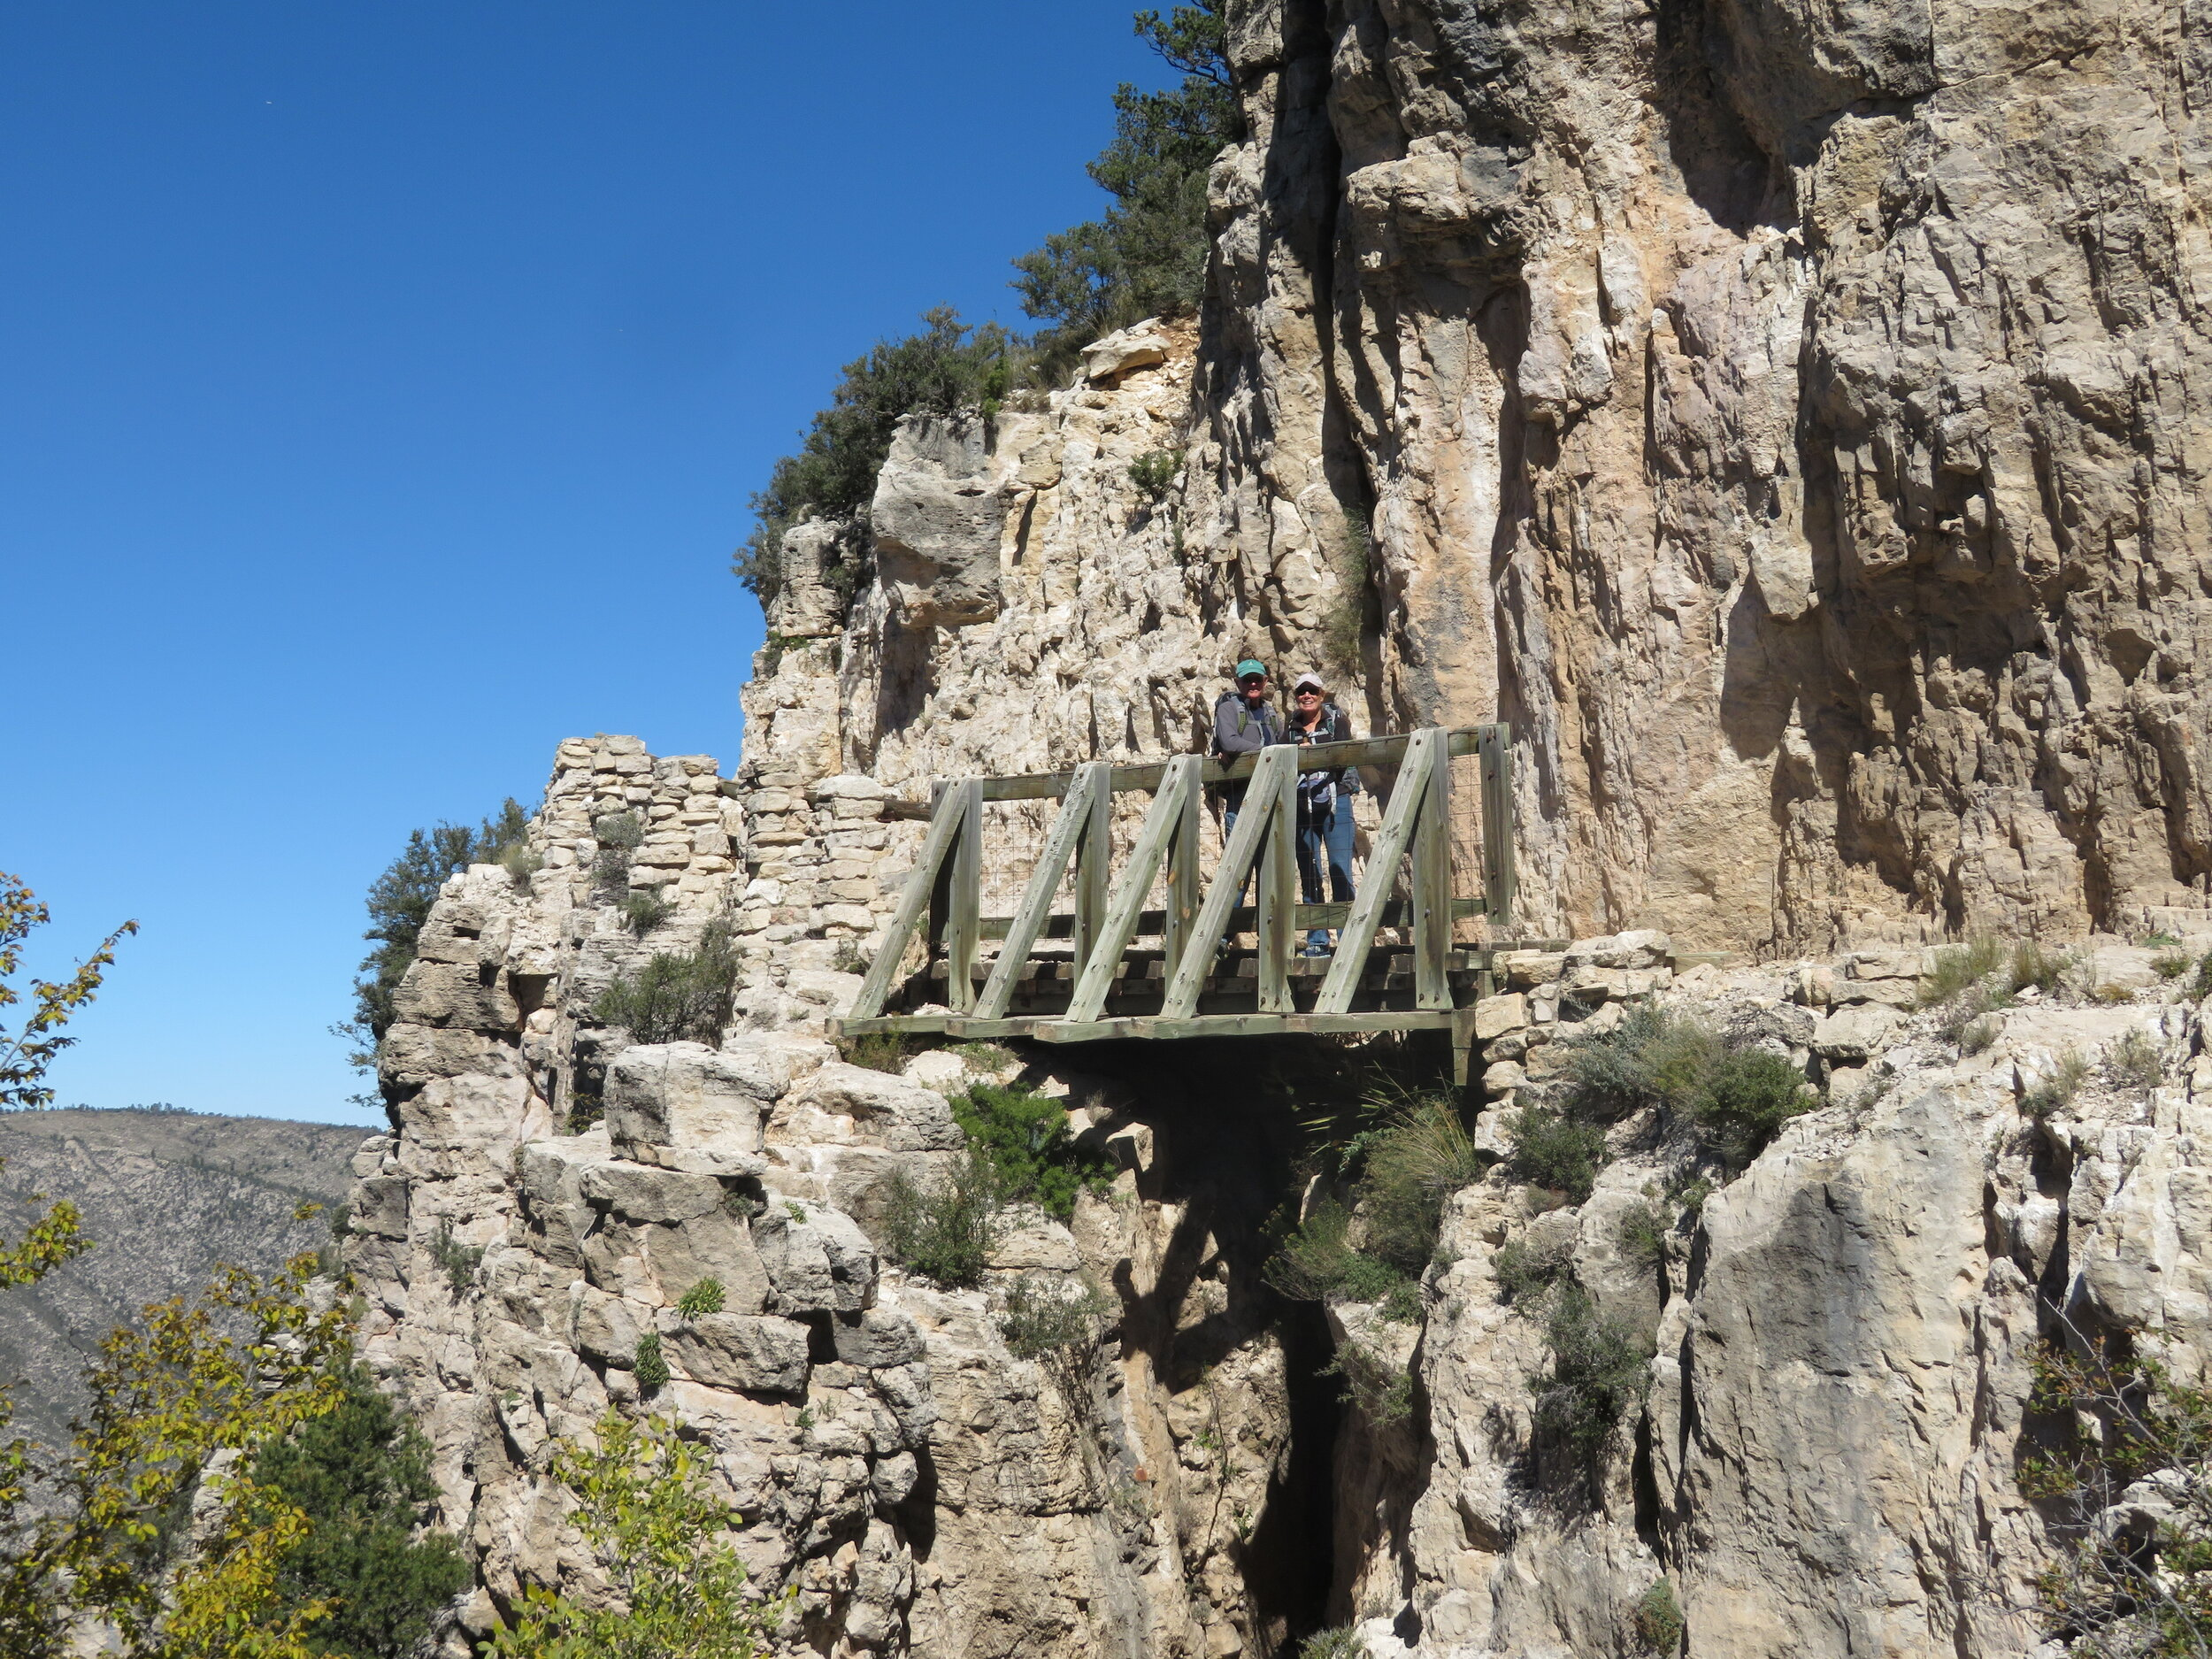 A sturdy bridge was constructed to traverse a sheer drop-off point along the trail.